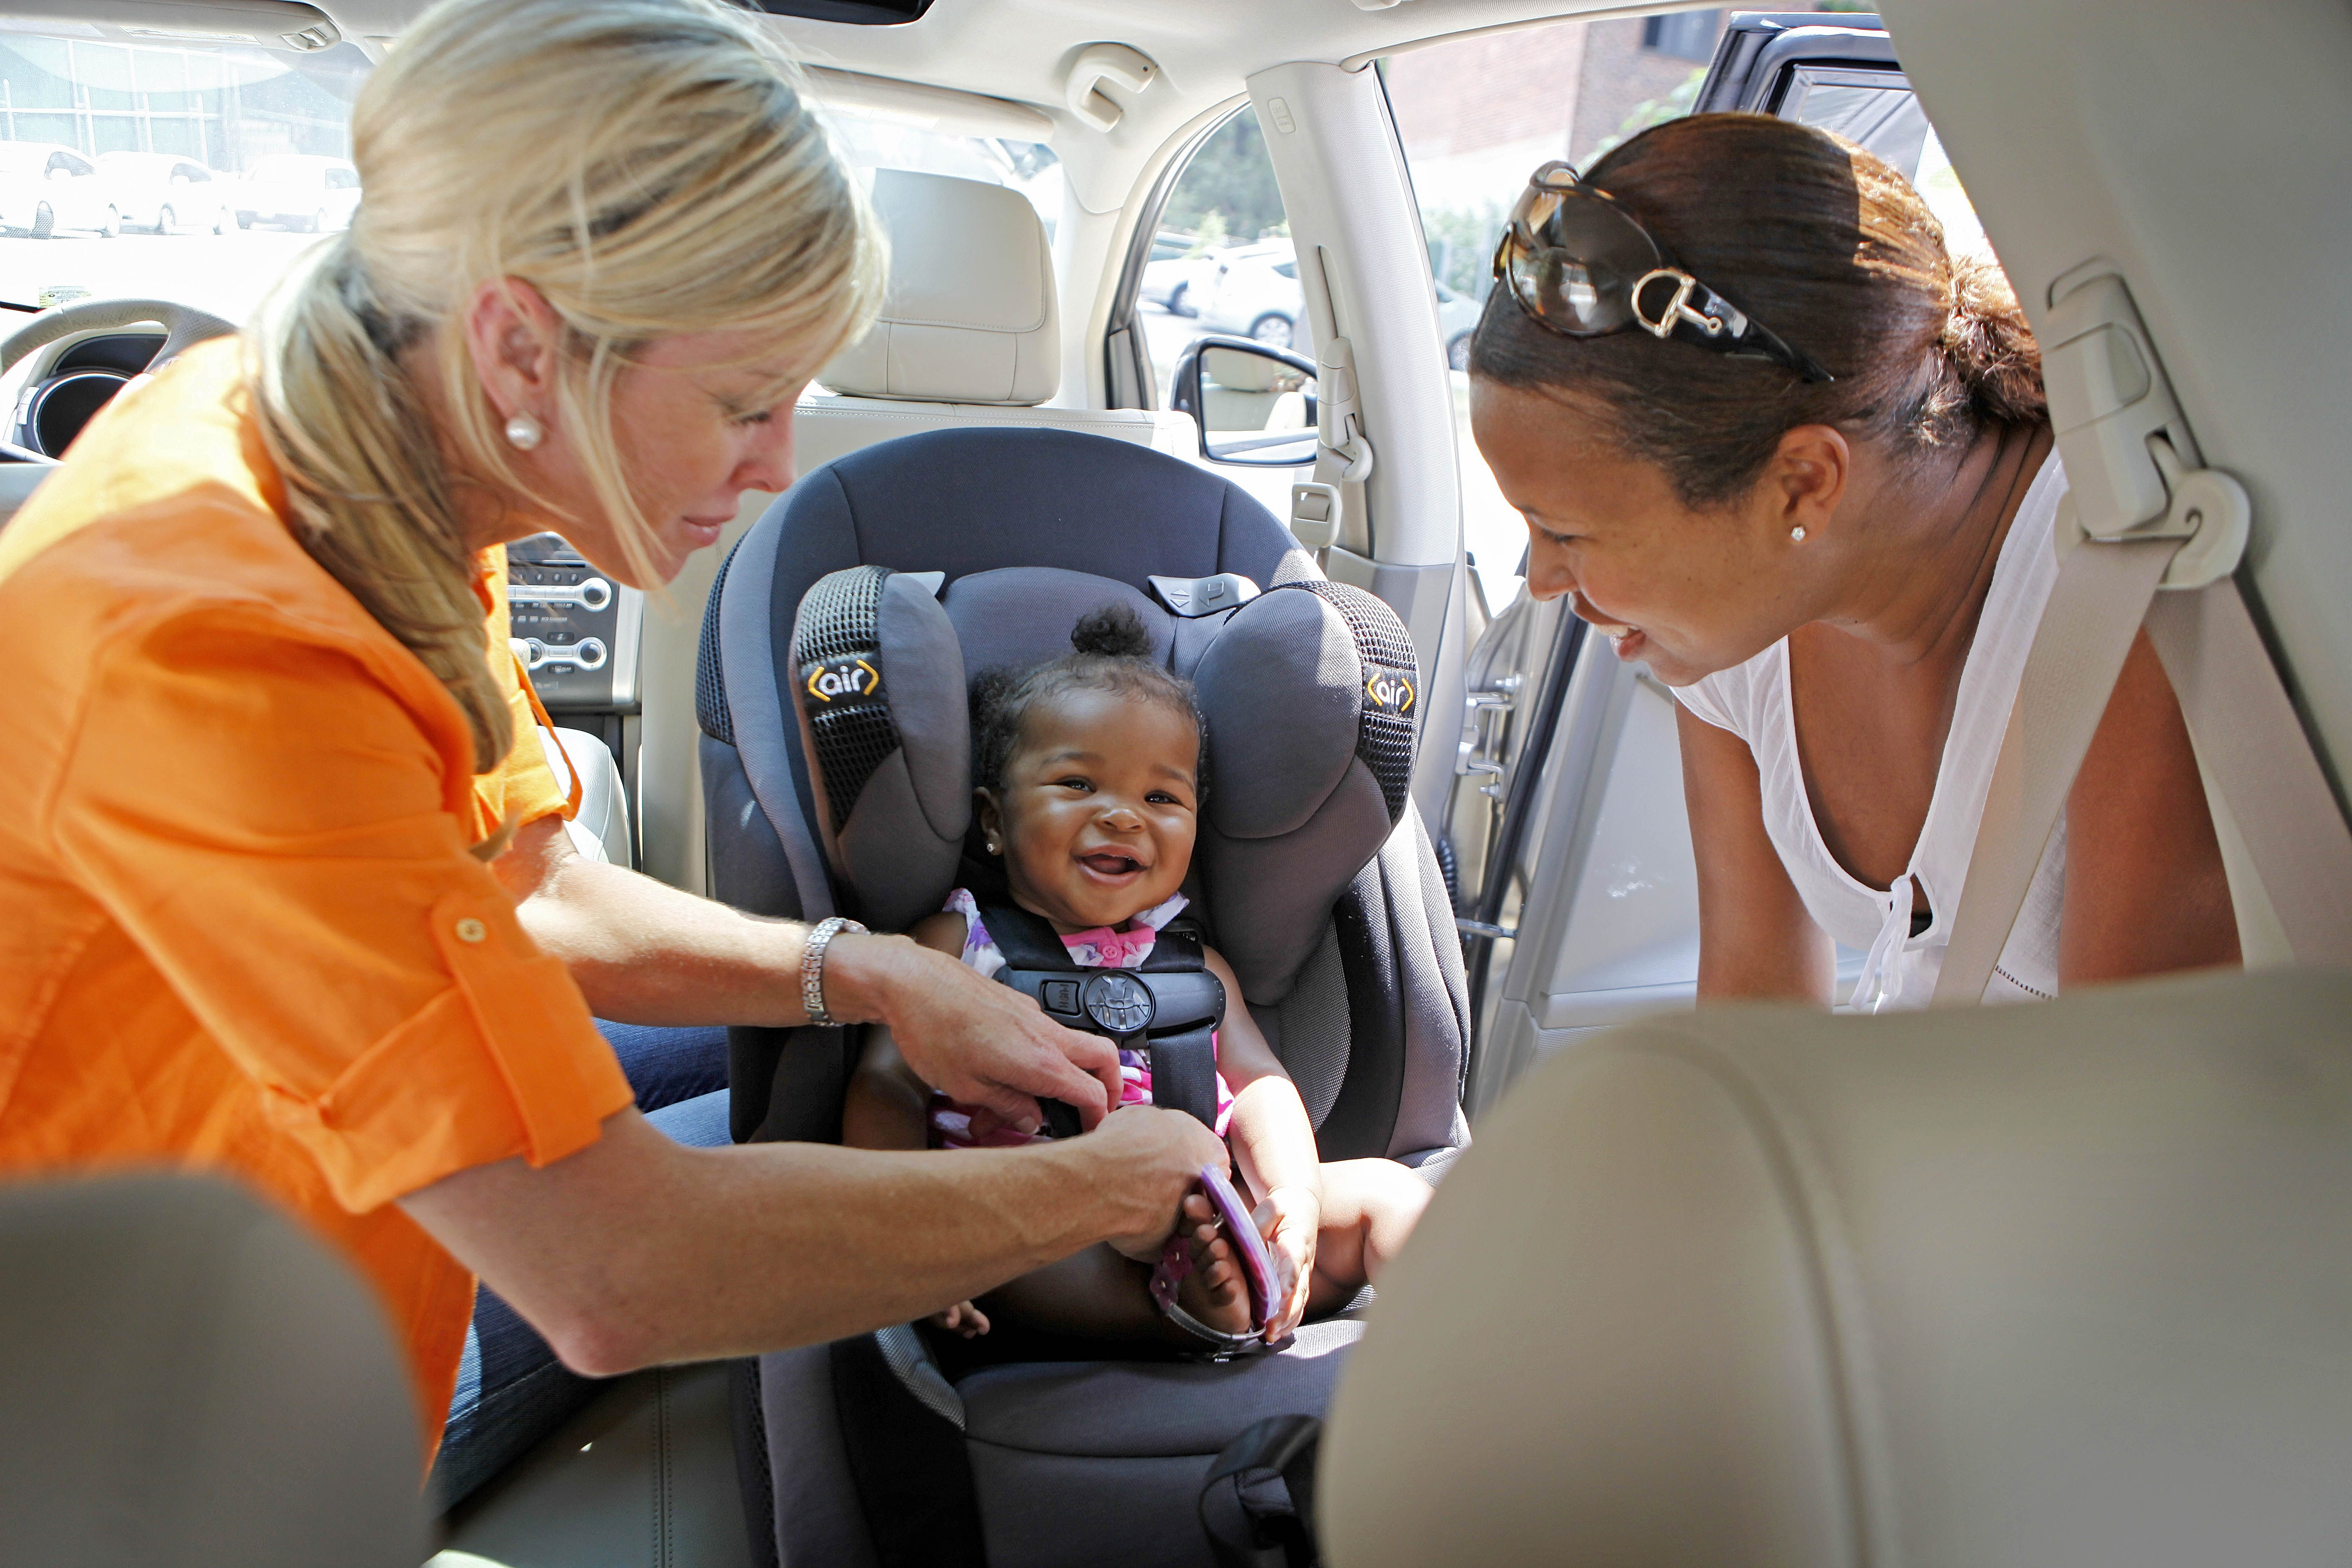 Correctly used child safety seats reduce fatalities by as much as 71